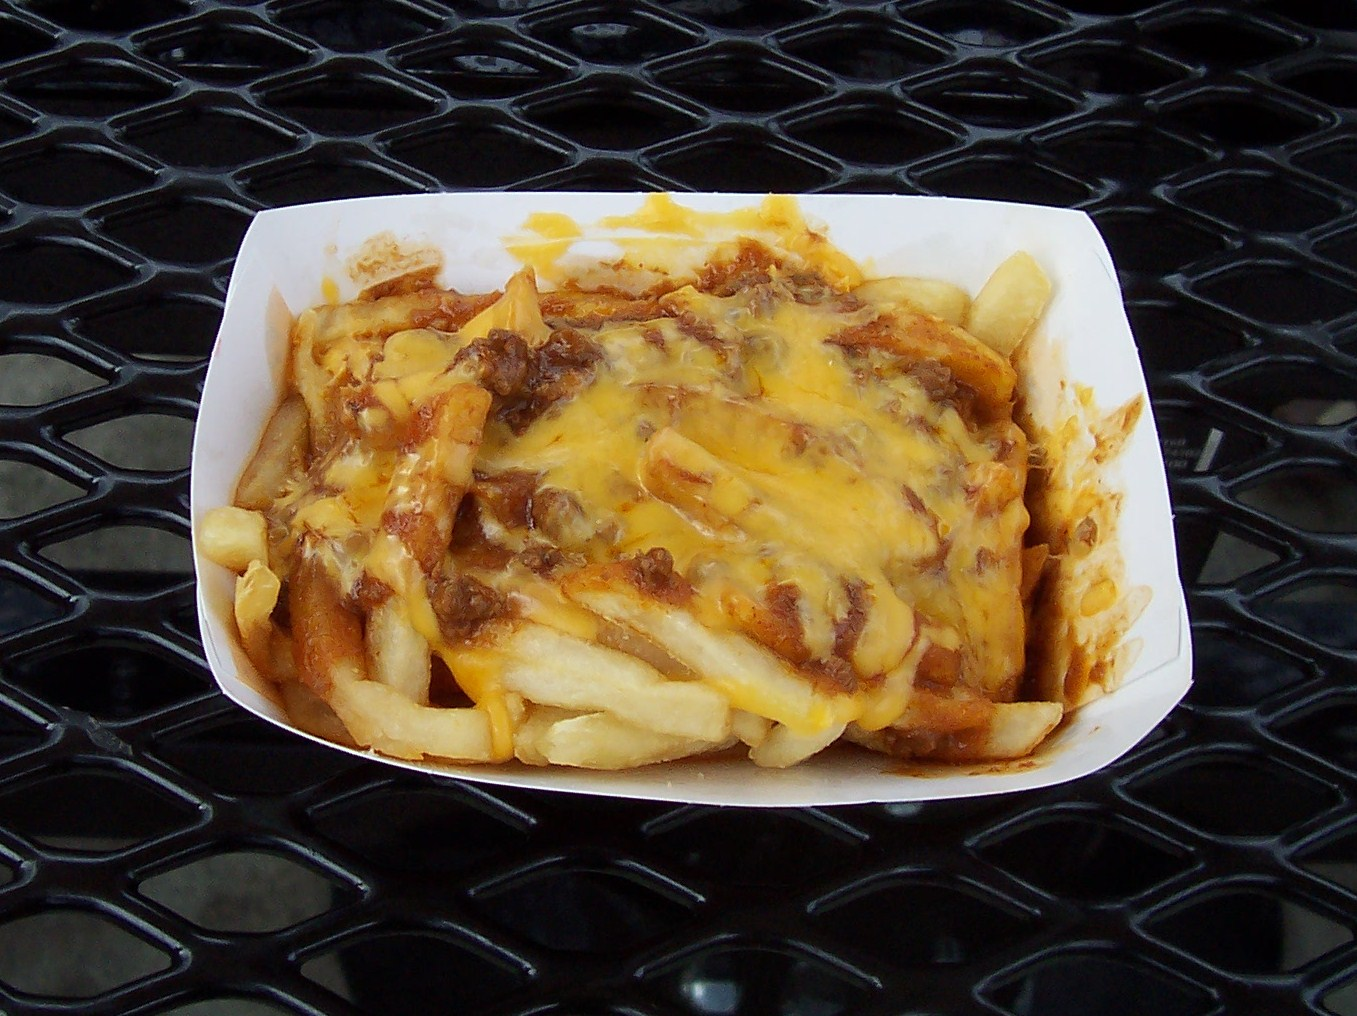 chili cheese fries the hat pastrami fries the hat chili cheese fries ...